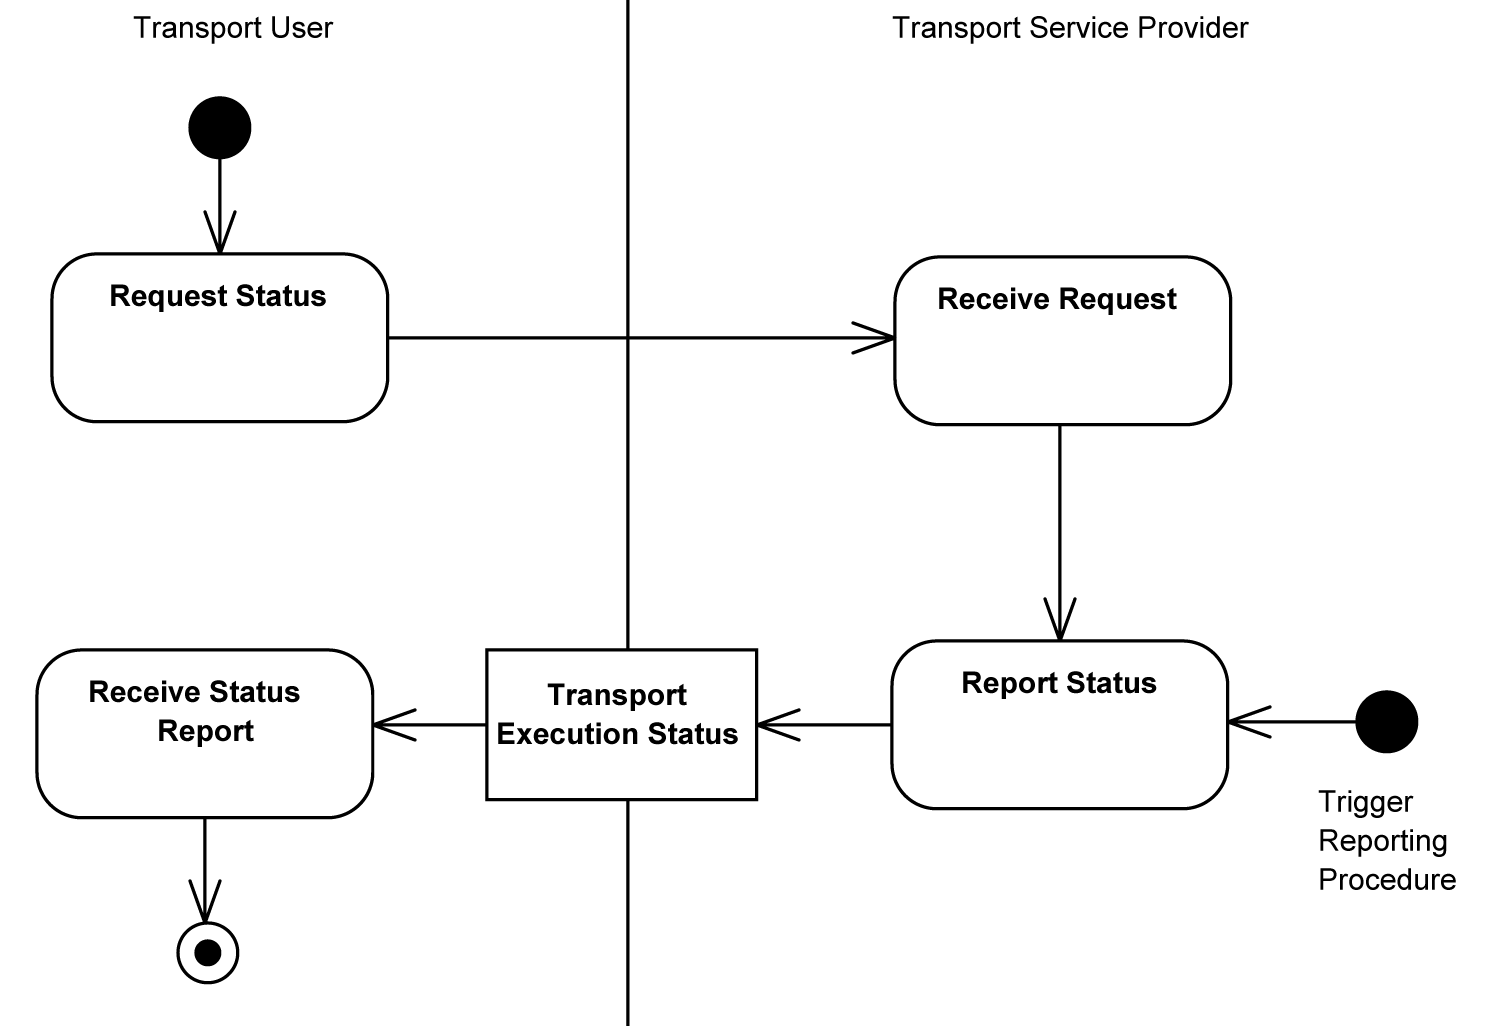 Universal business language version 21 transport execution status process diagram ccuart Choice Image